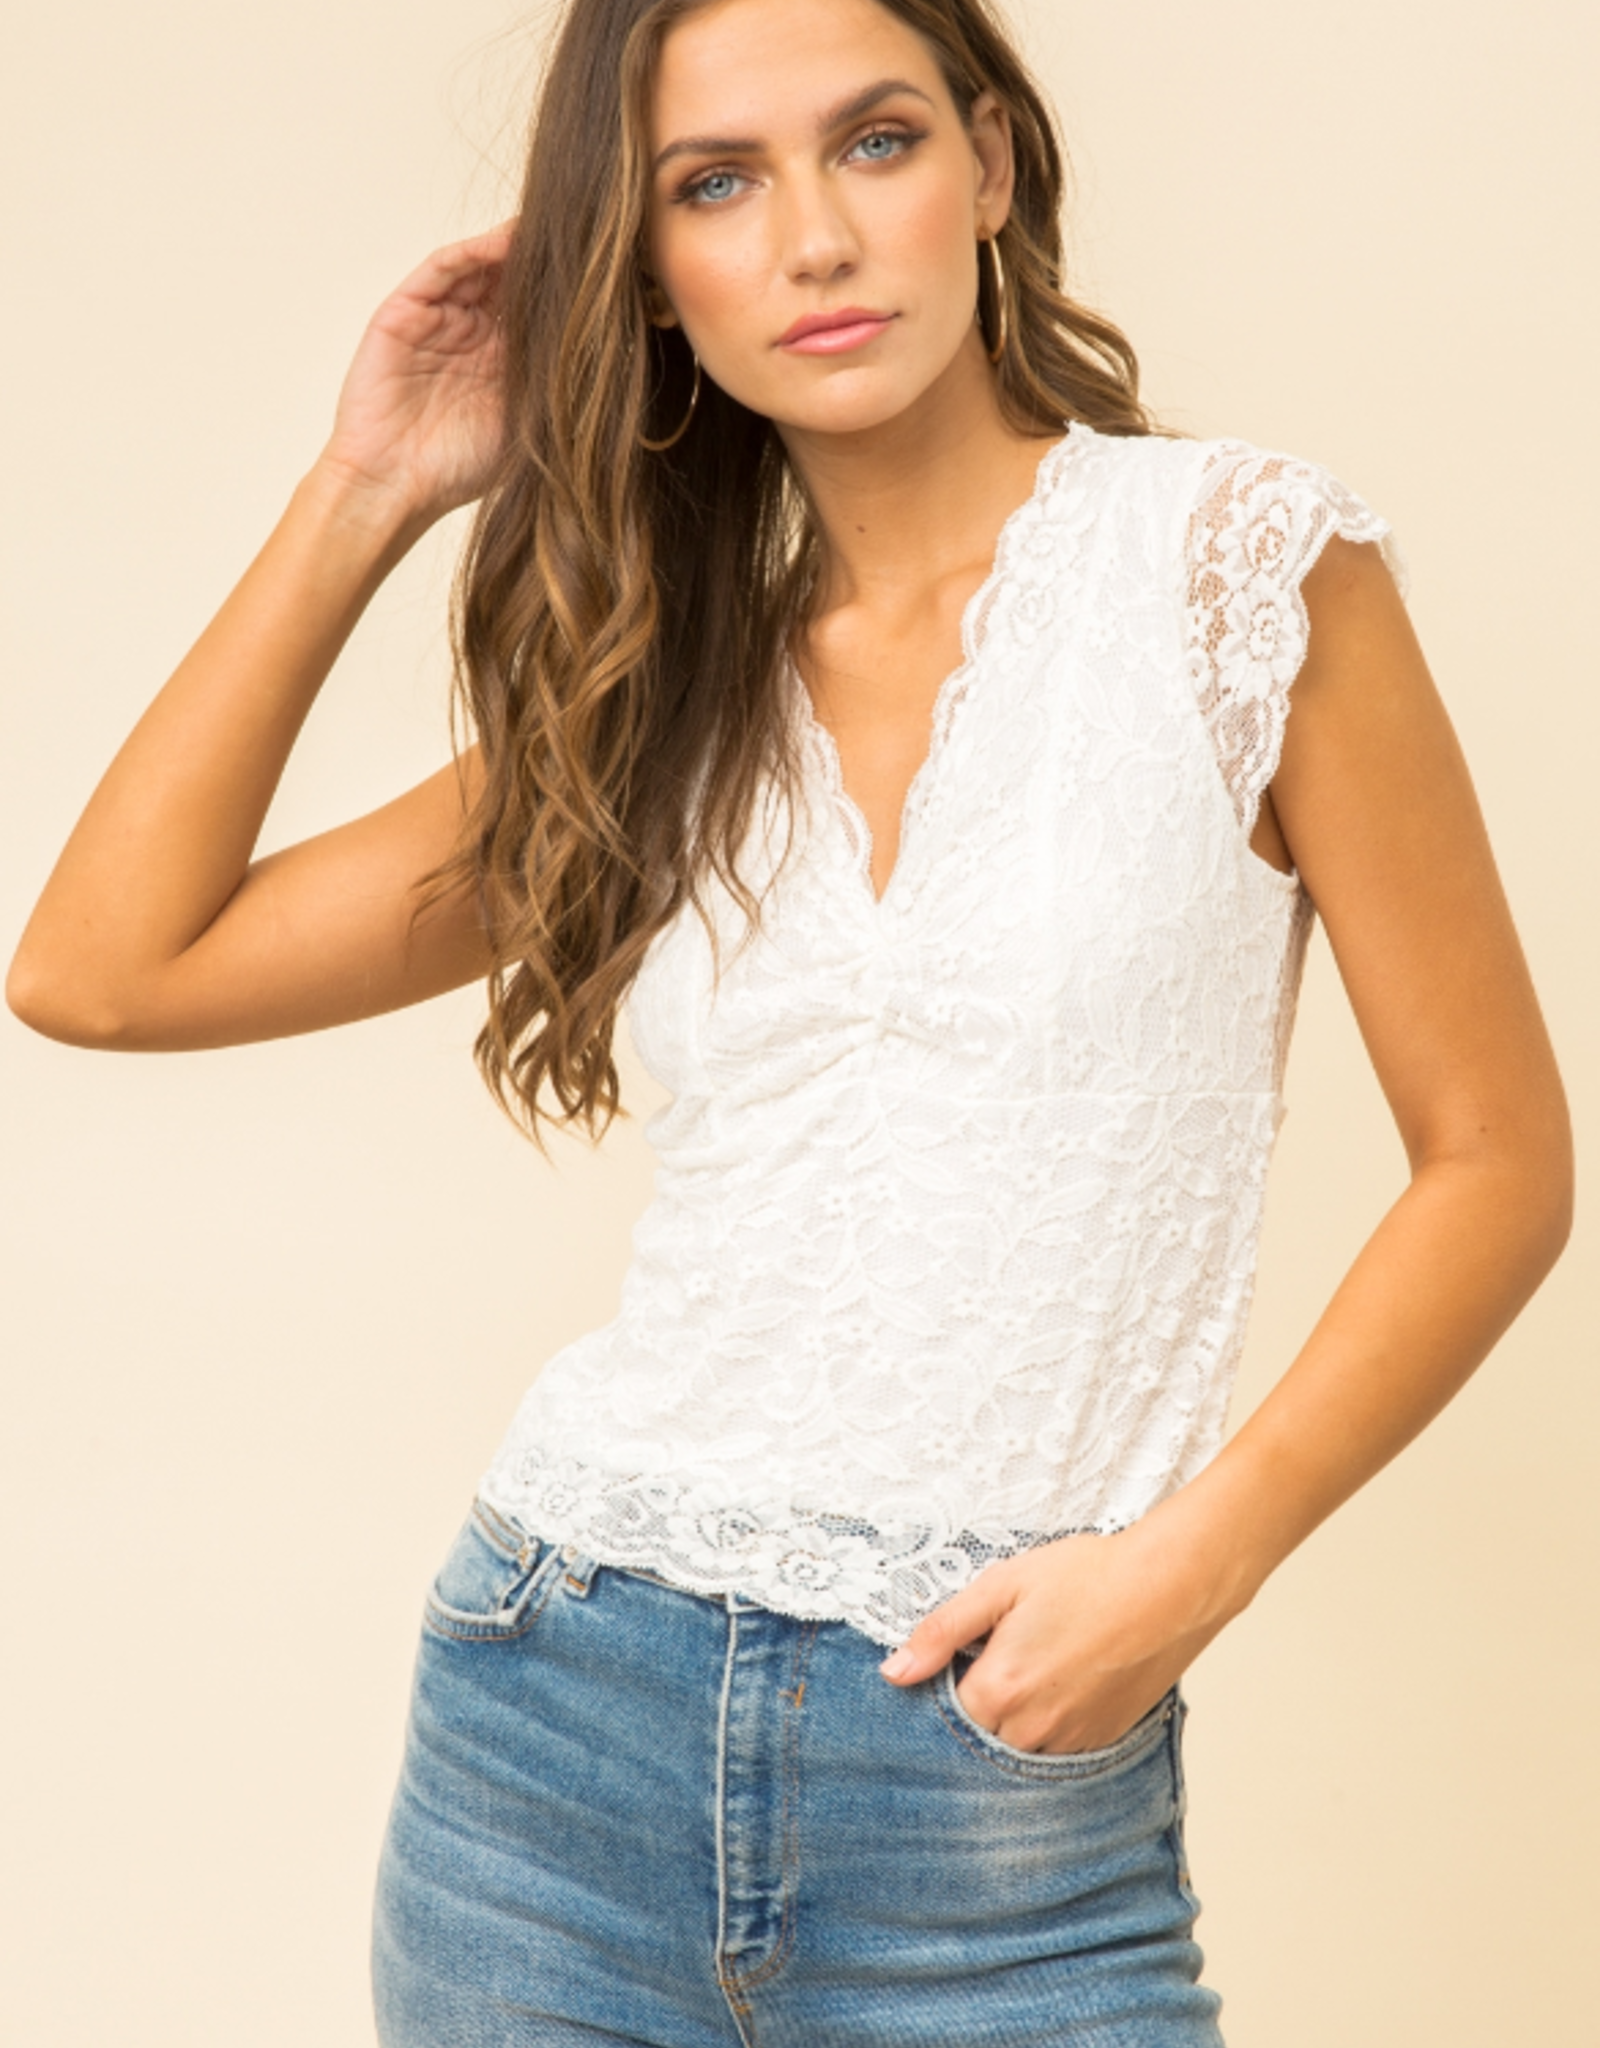 Scallop Lace crop top